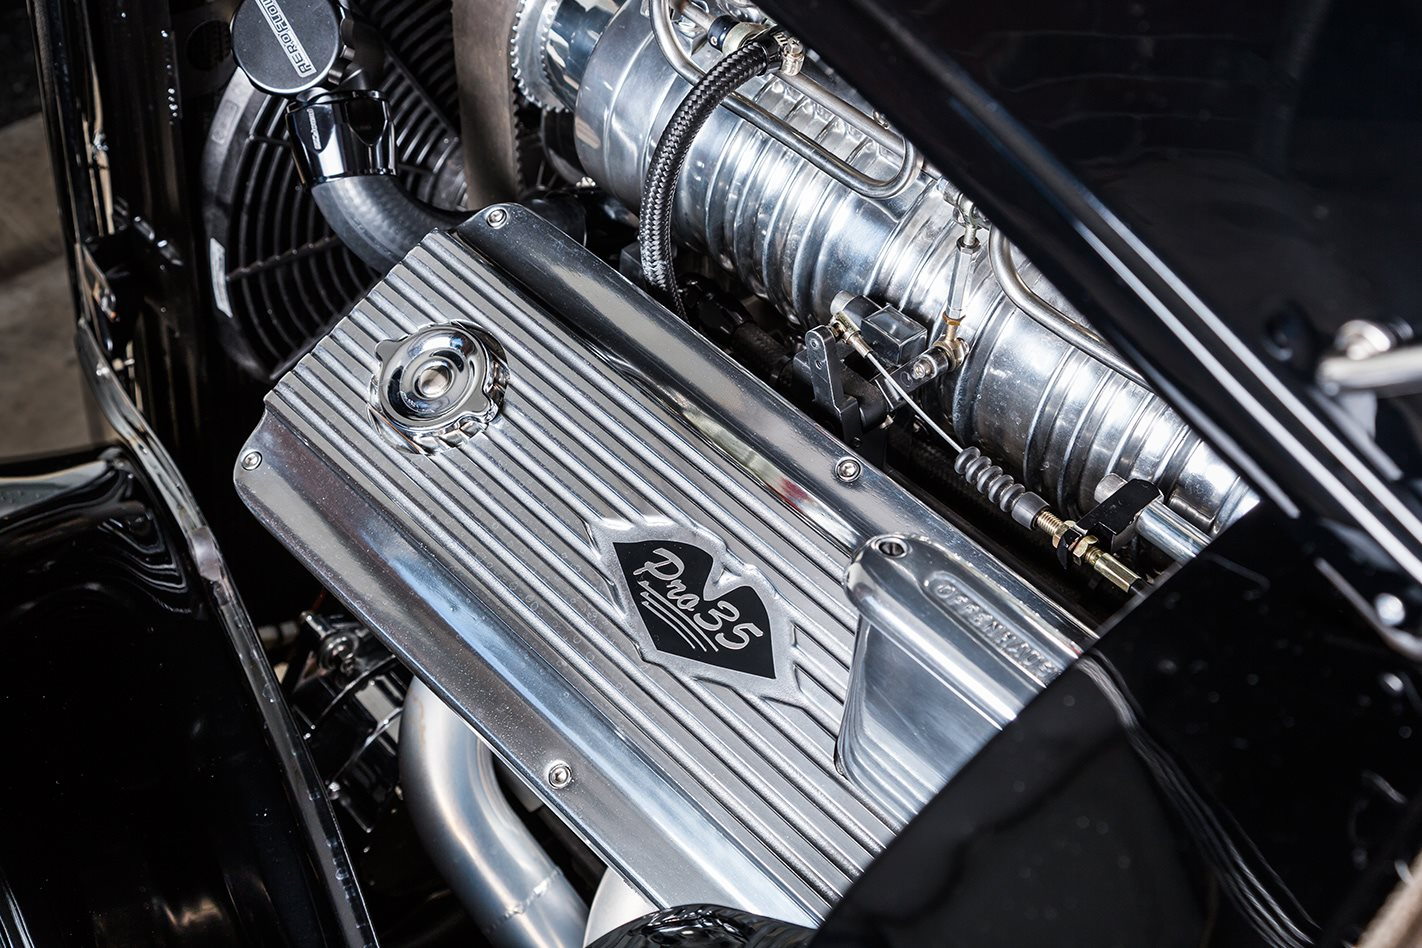 1935 Ford coupe engine